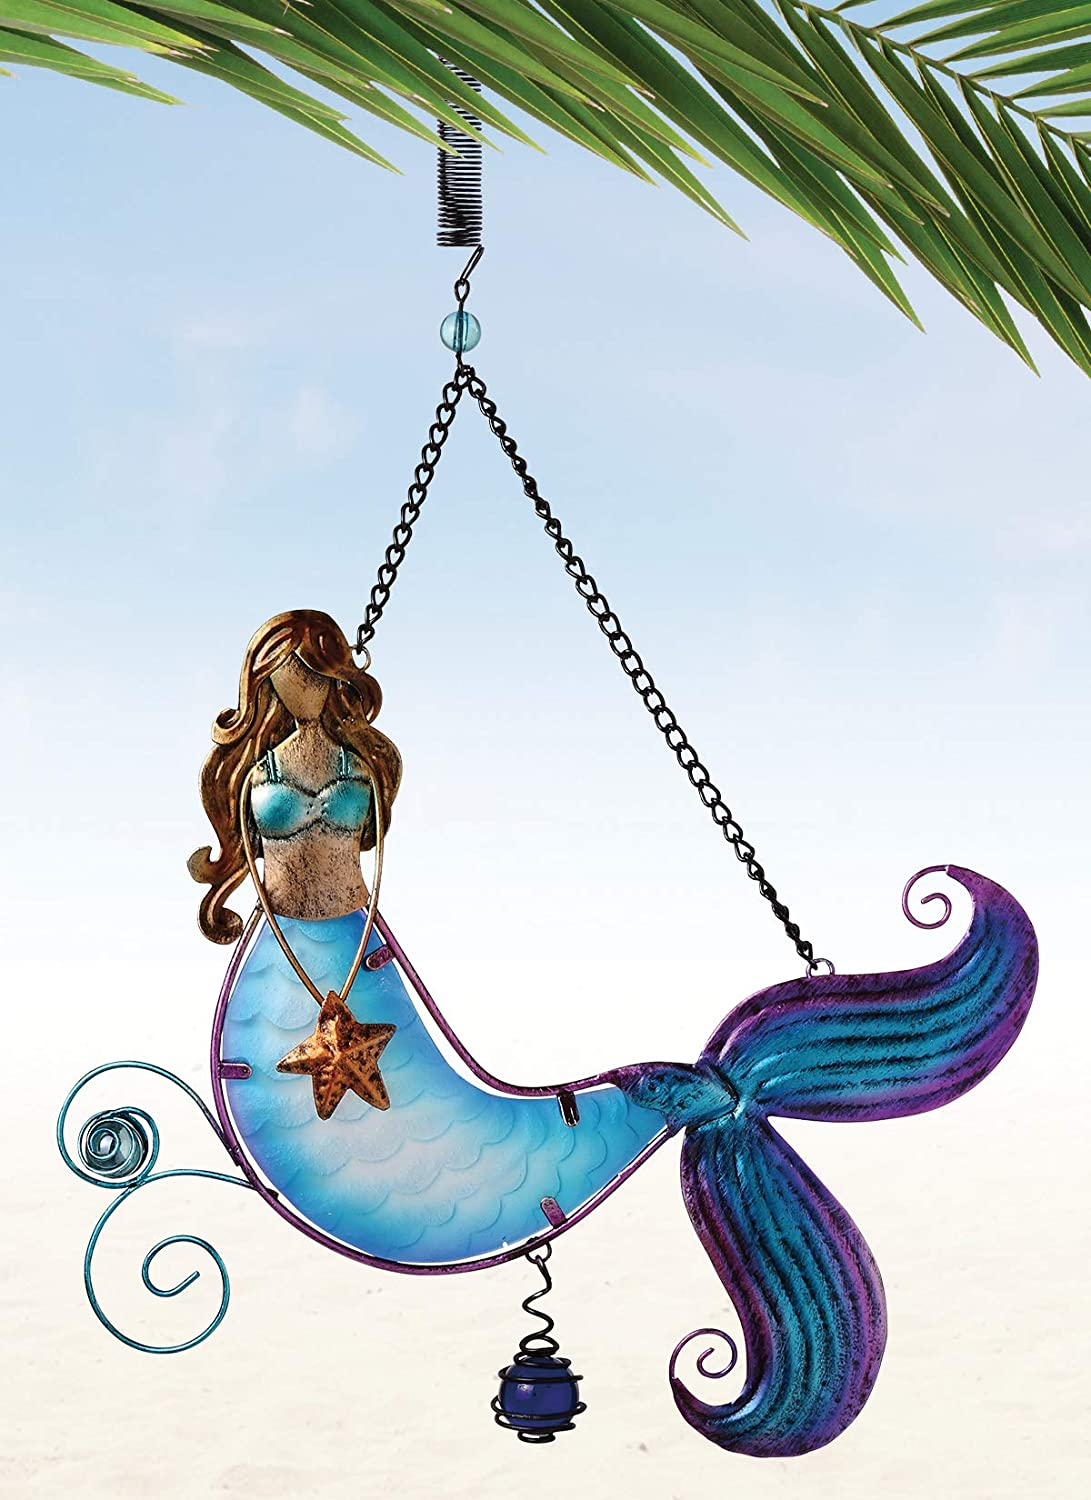 Sunset Vista Designs Metal and Glass Mermaid Bouncy Hanging Decoration